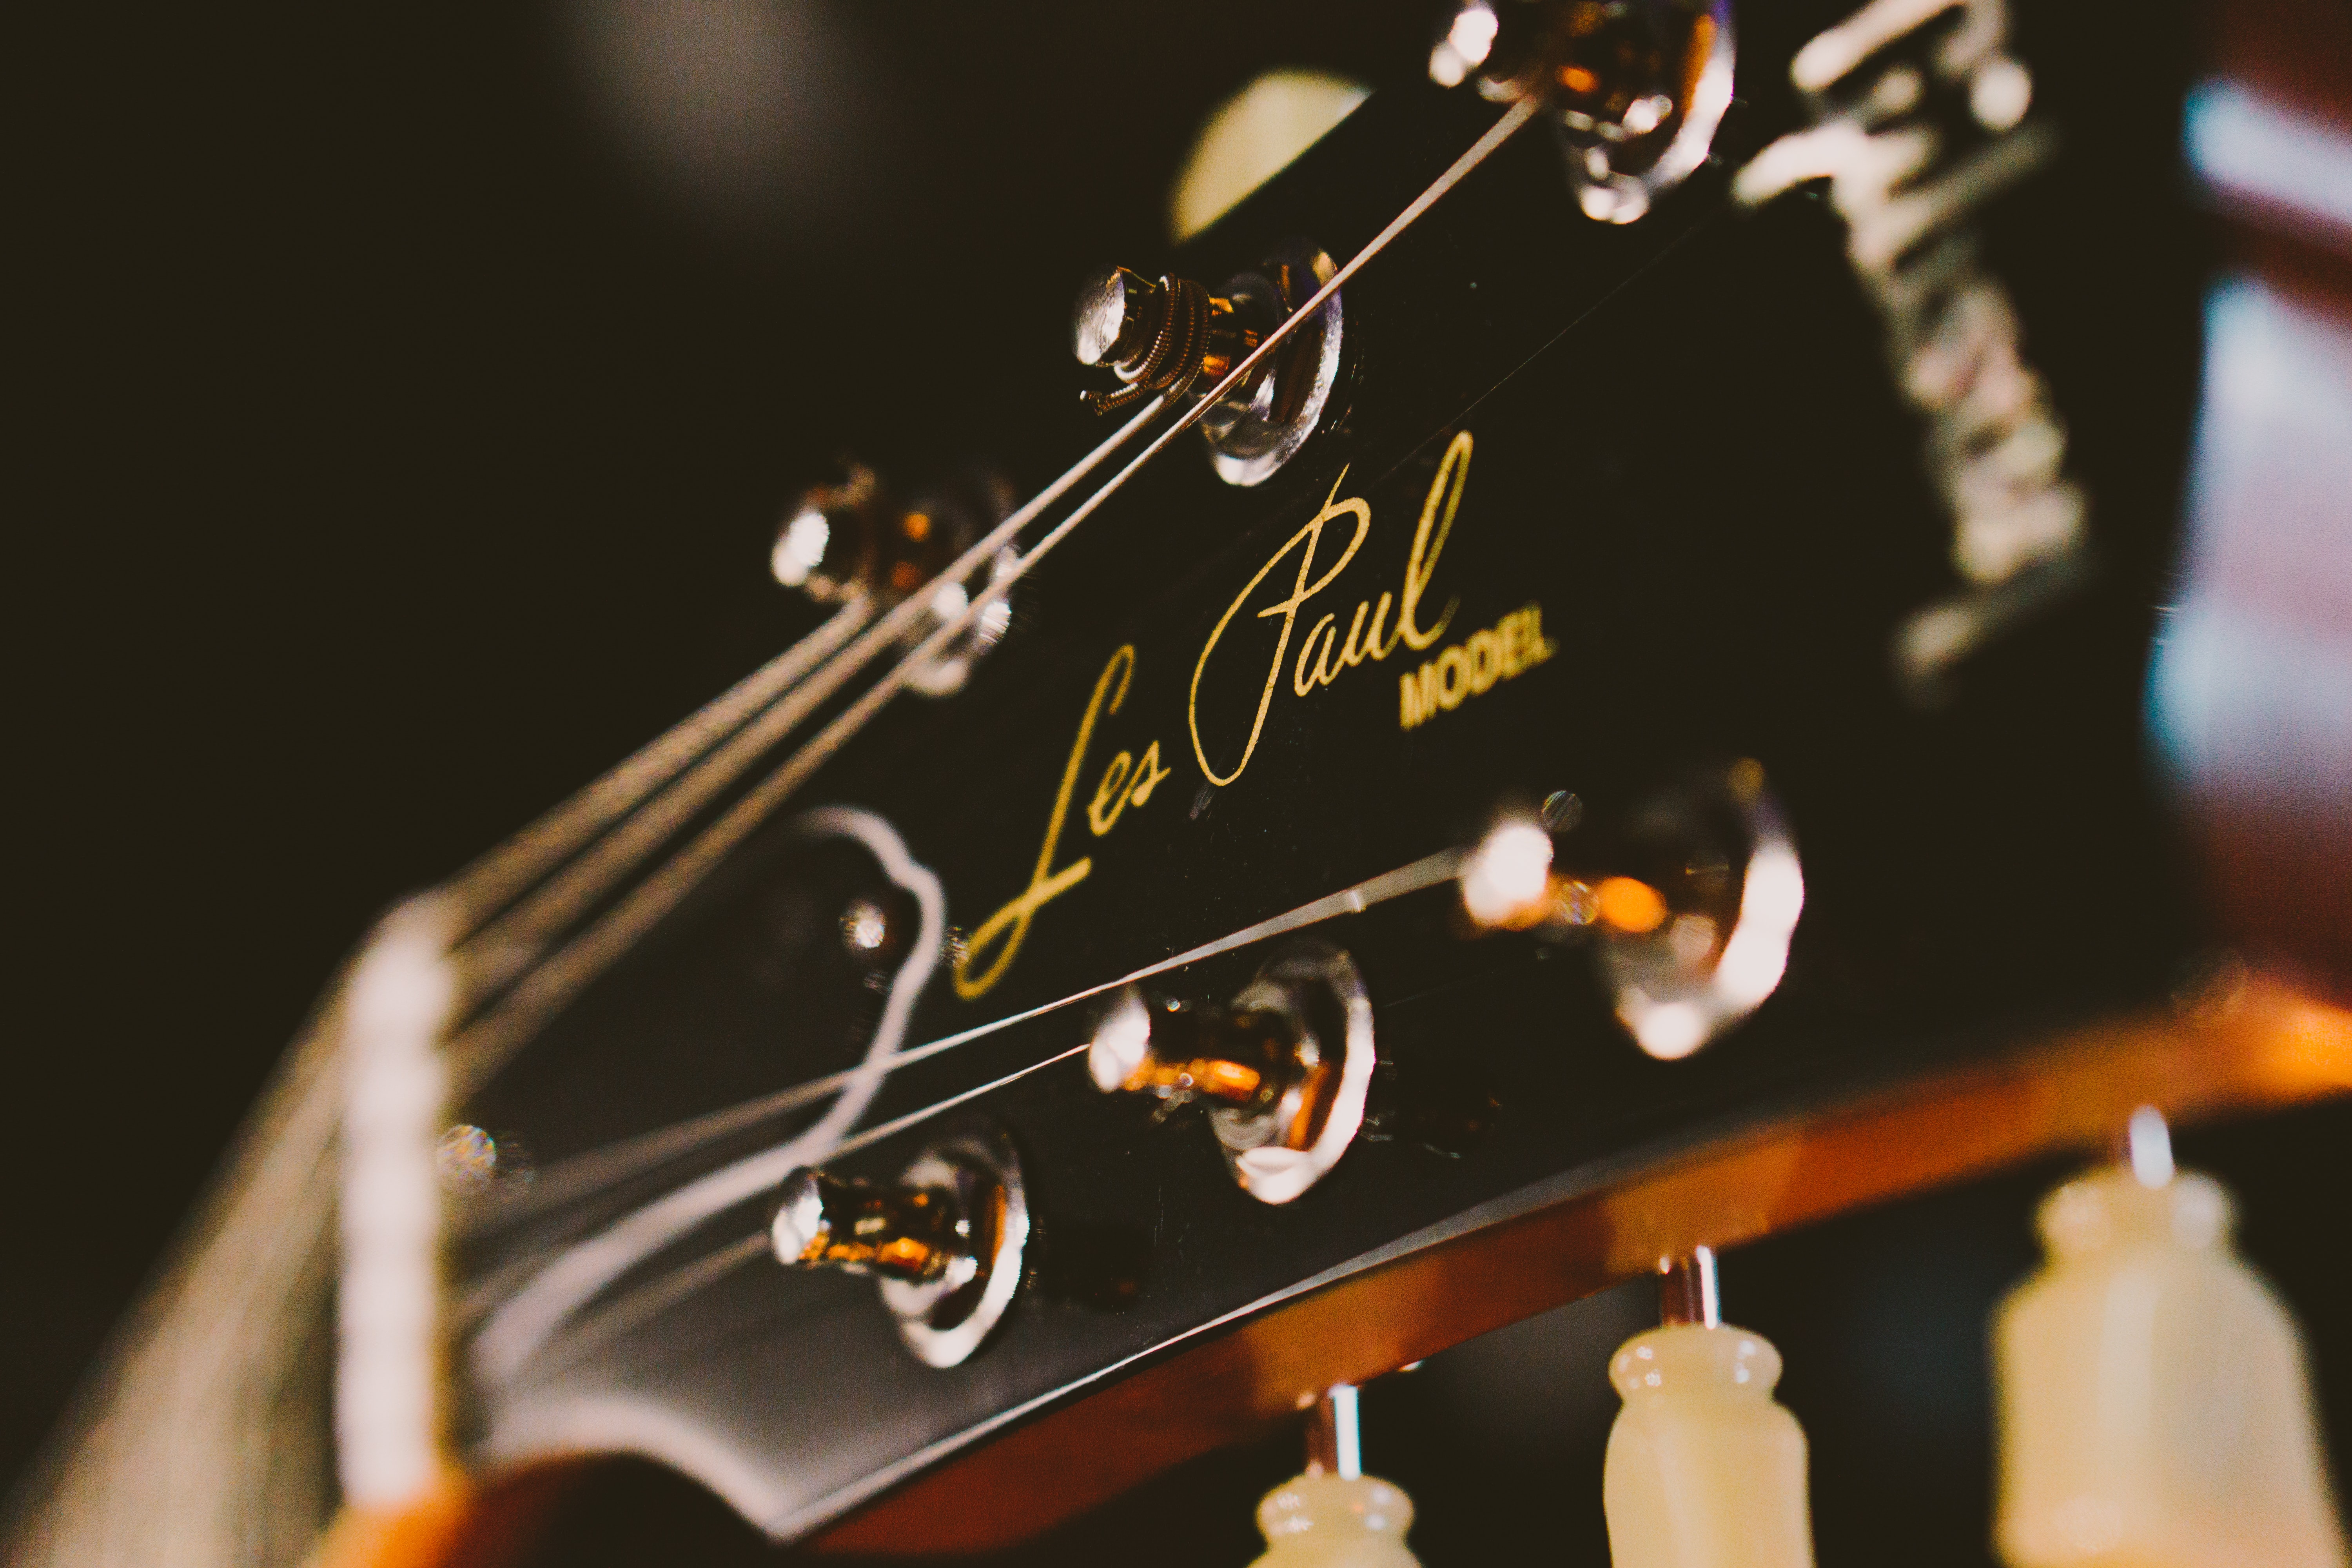 A close-up of the headstock of a Les Paul guitar